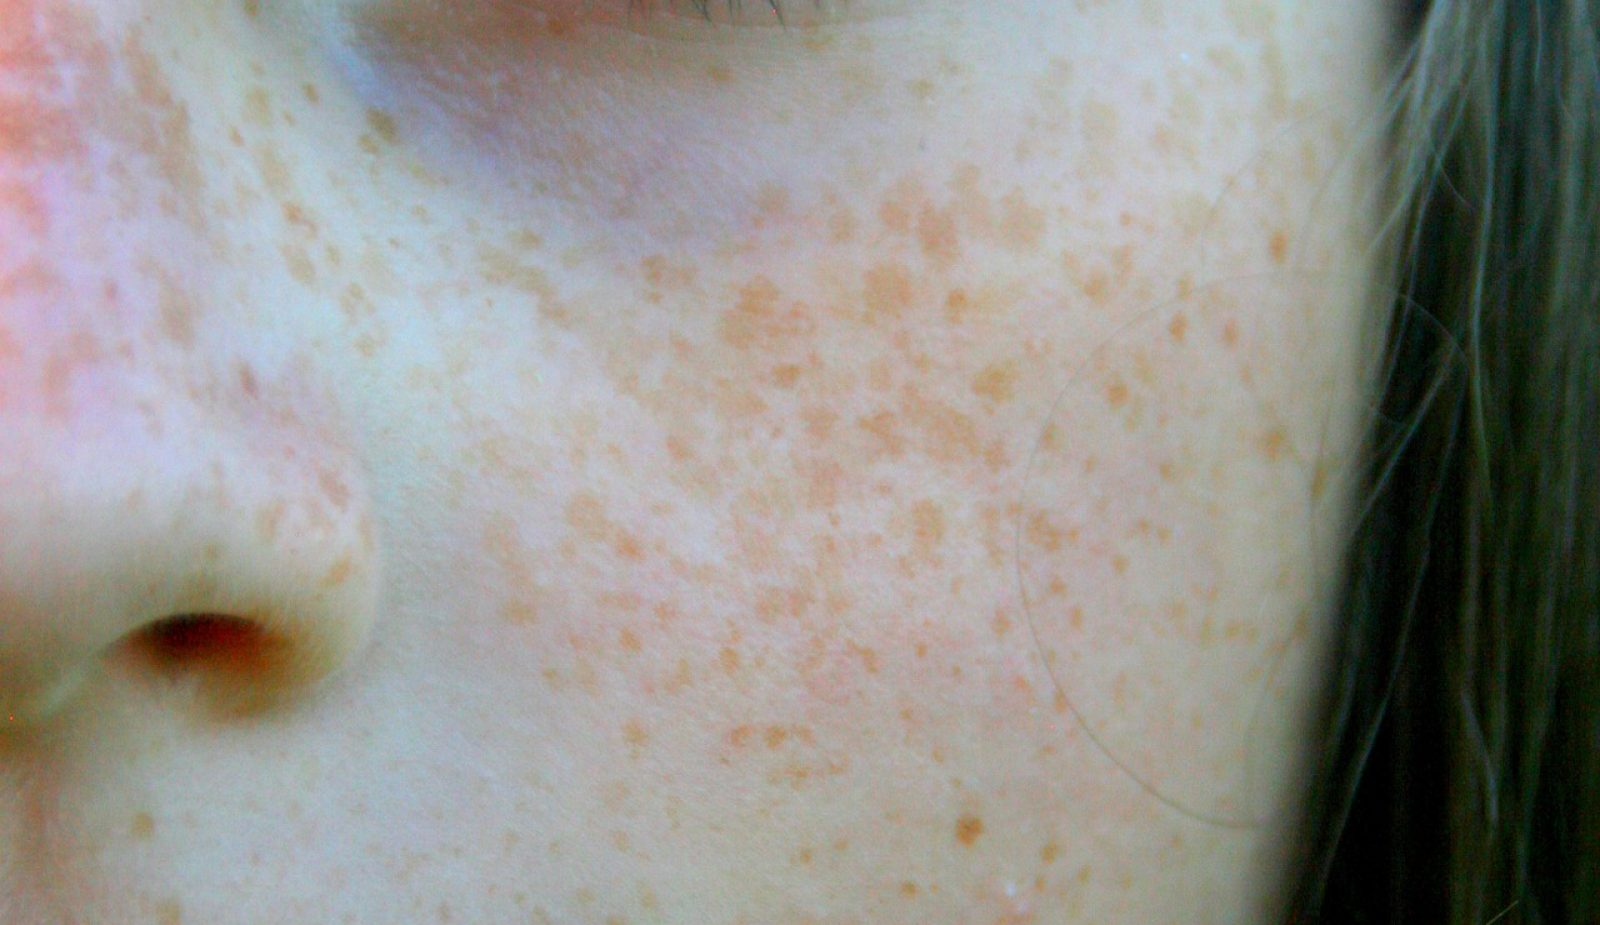 Are My Freckles an Indicator of Skin Cancer?